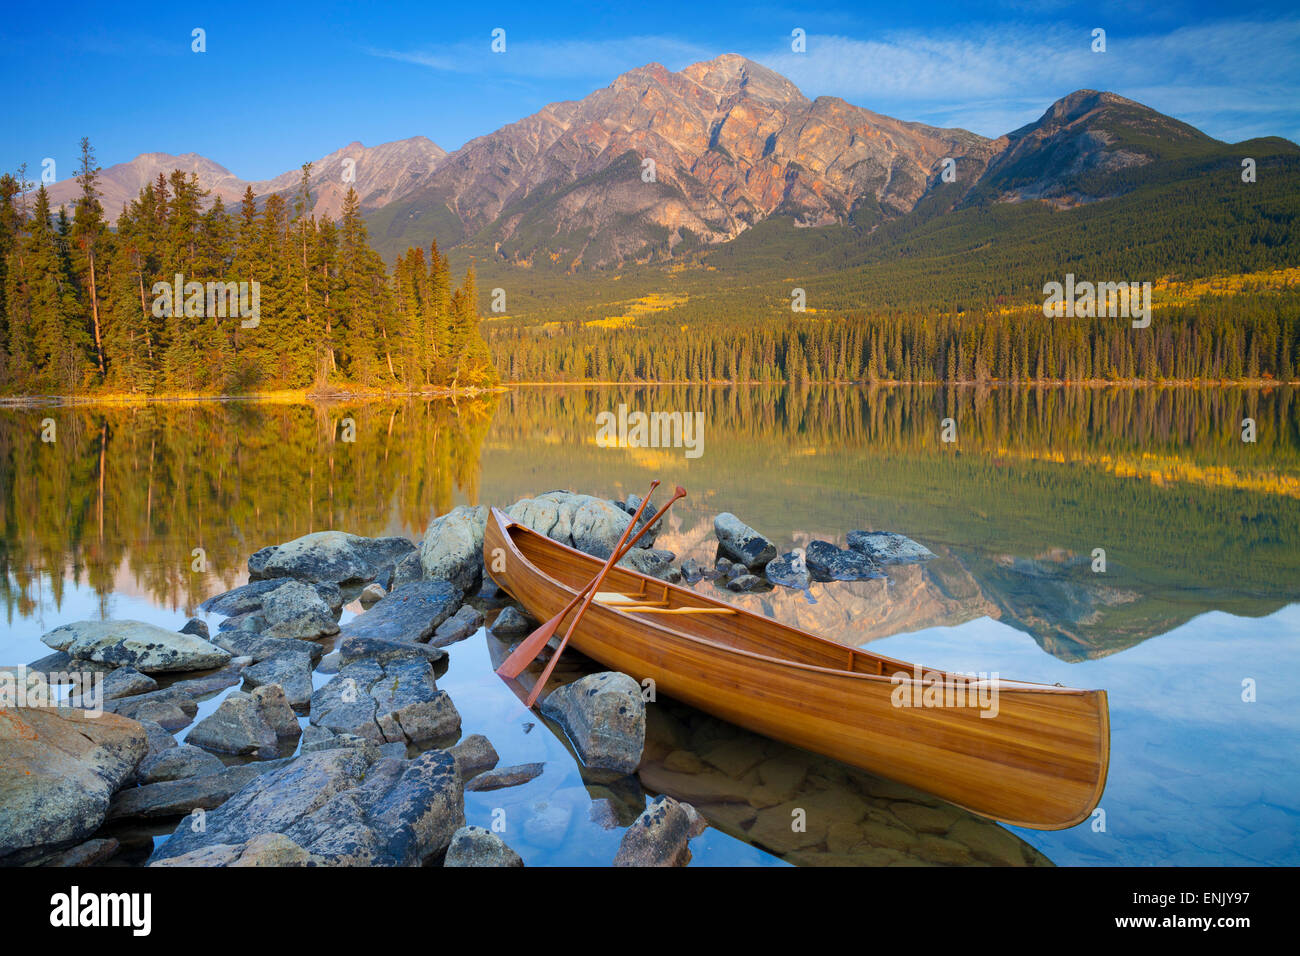 Canoë, le lac Pyramid Pyramid Mountain avec en arrière-plan, Jasper National Park, l'UNESCO, de l'Alberta, Photo Stock